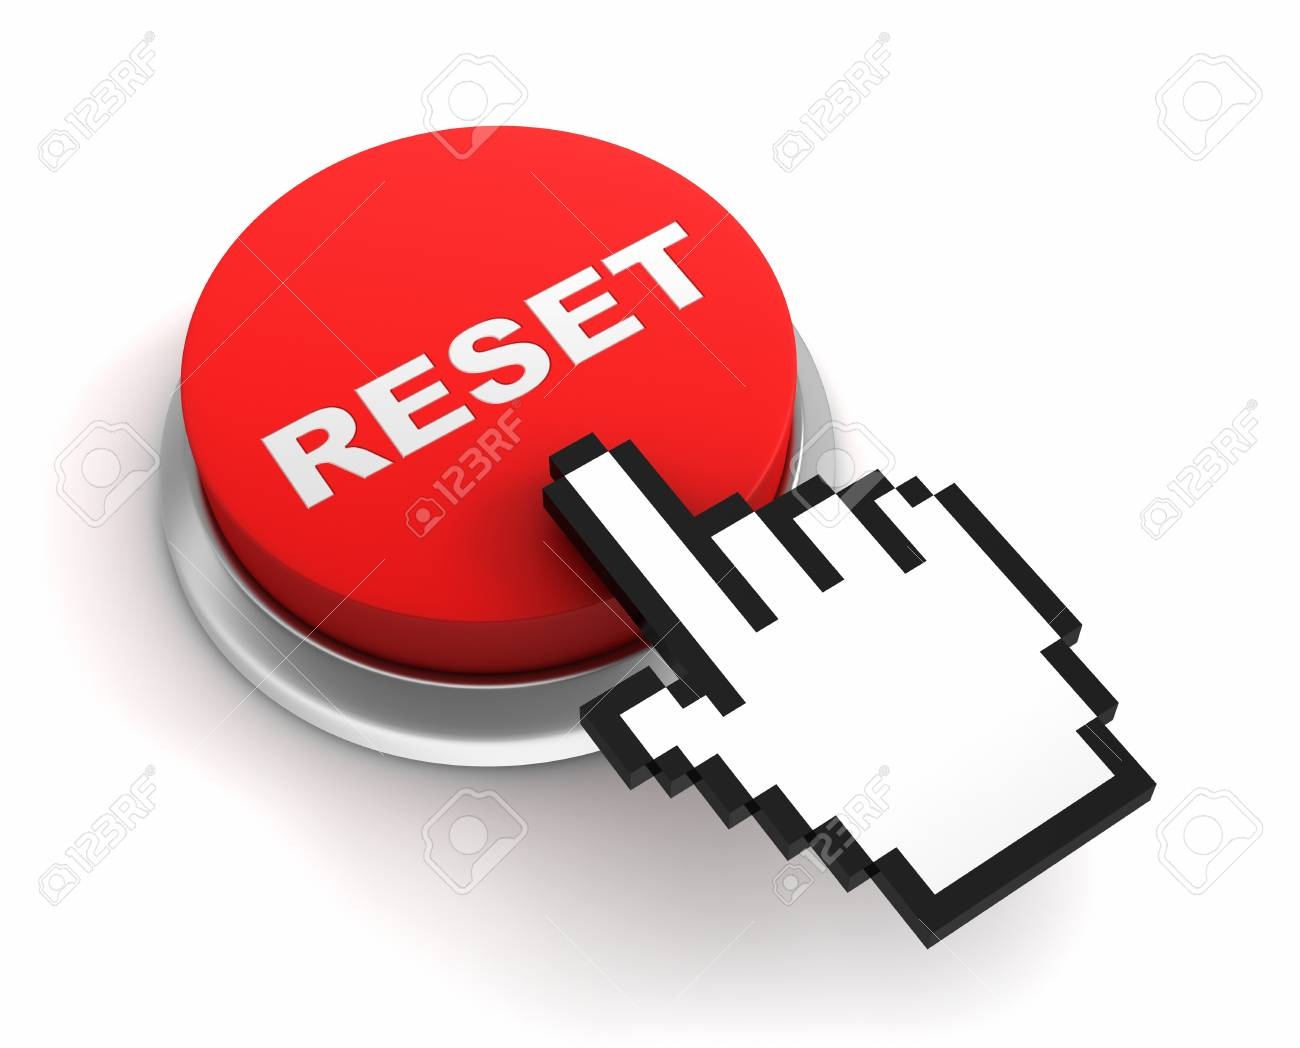 reset button 3d illustration isolated on white background stock